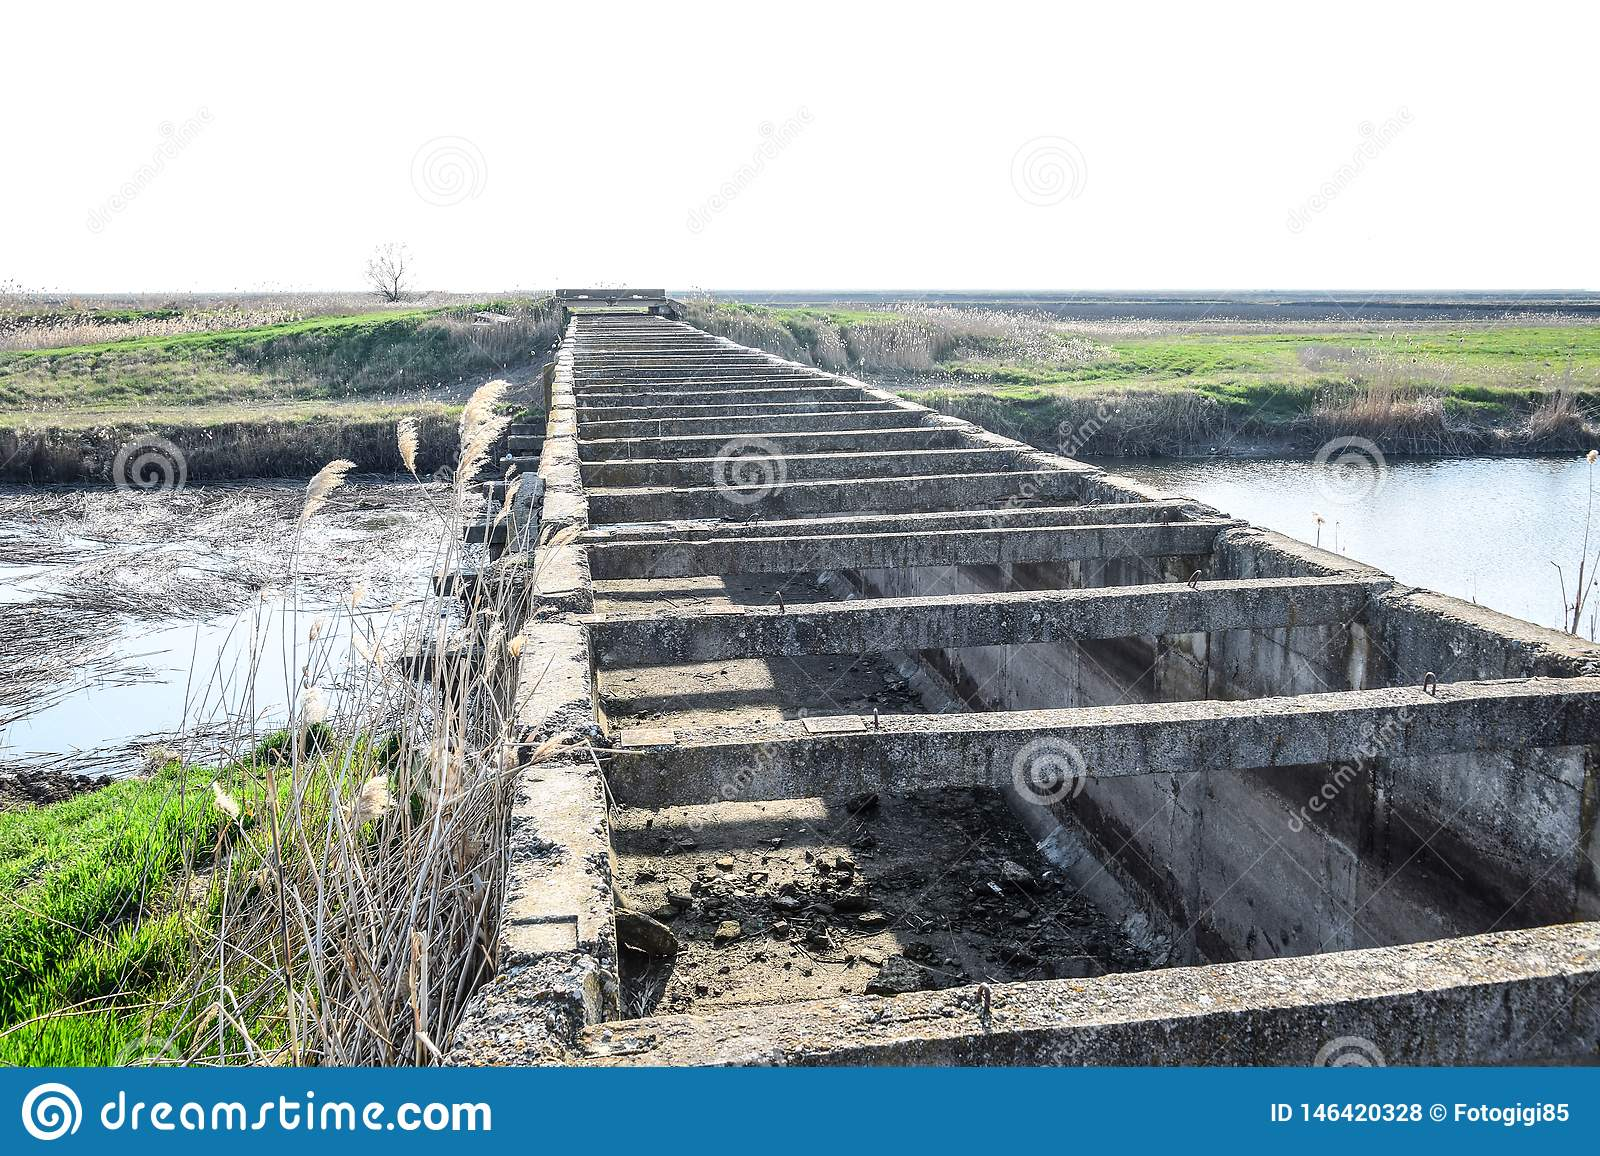 Canal irrigation system rice fields. Concrete tunnel for irrigation canal